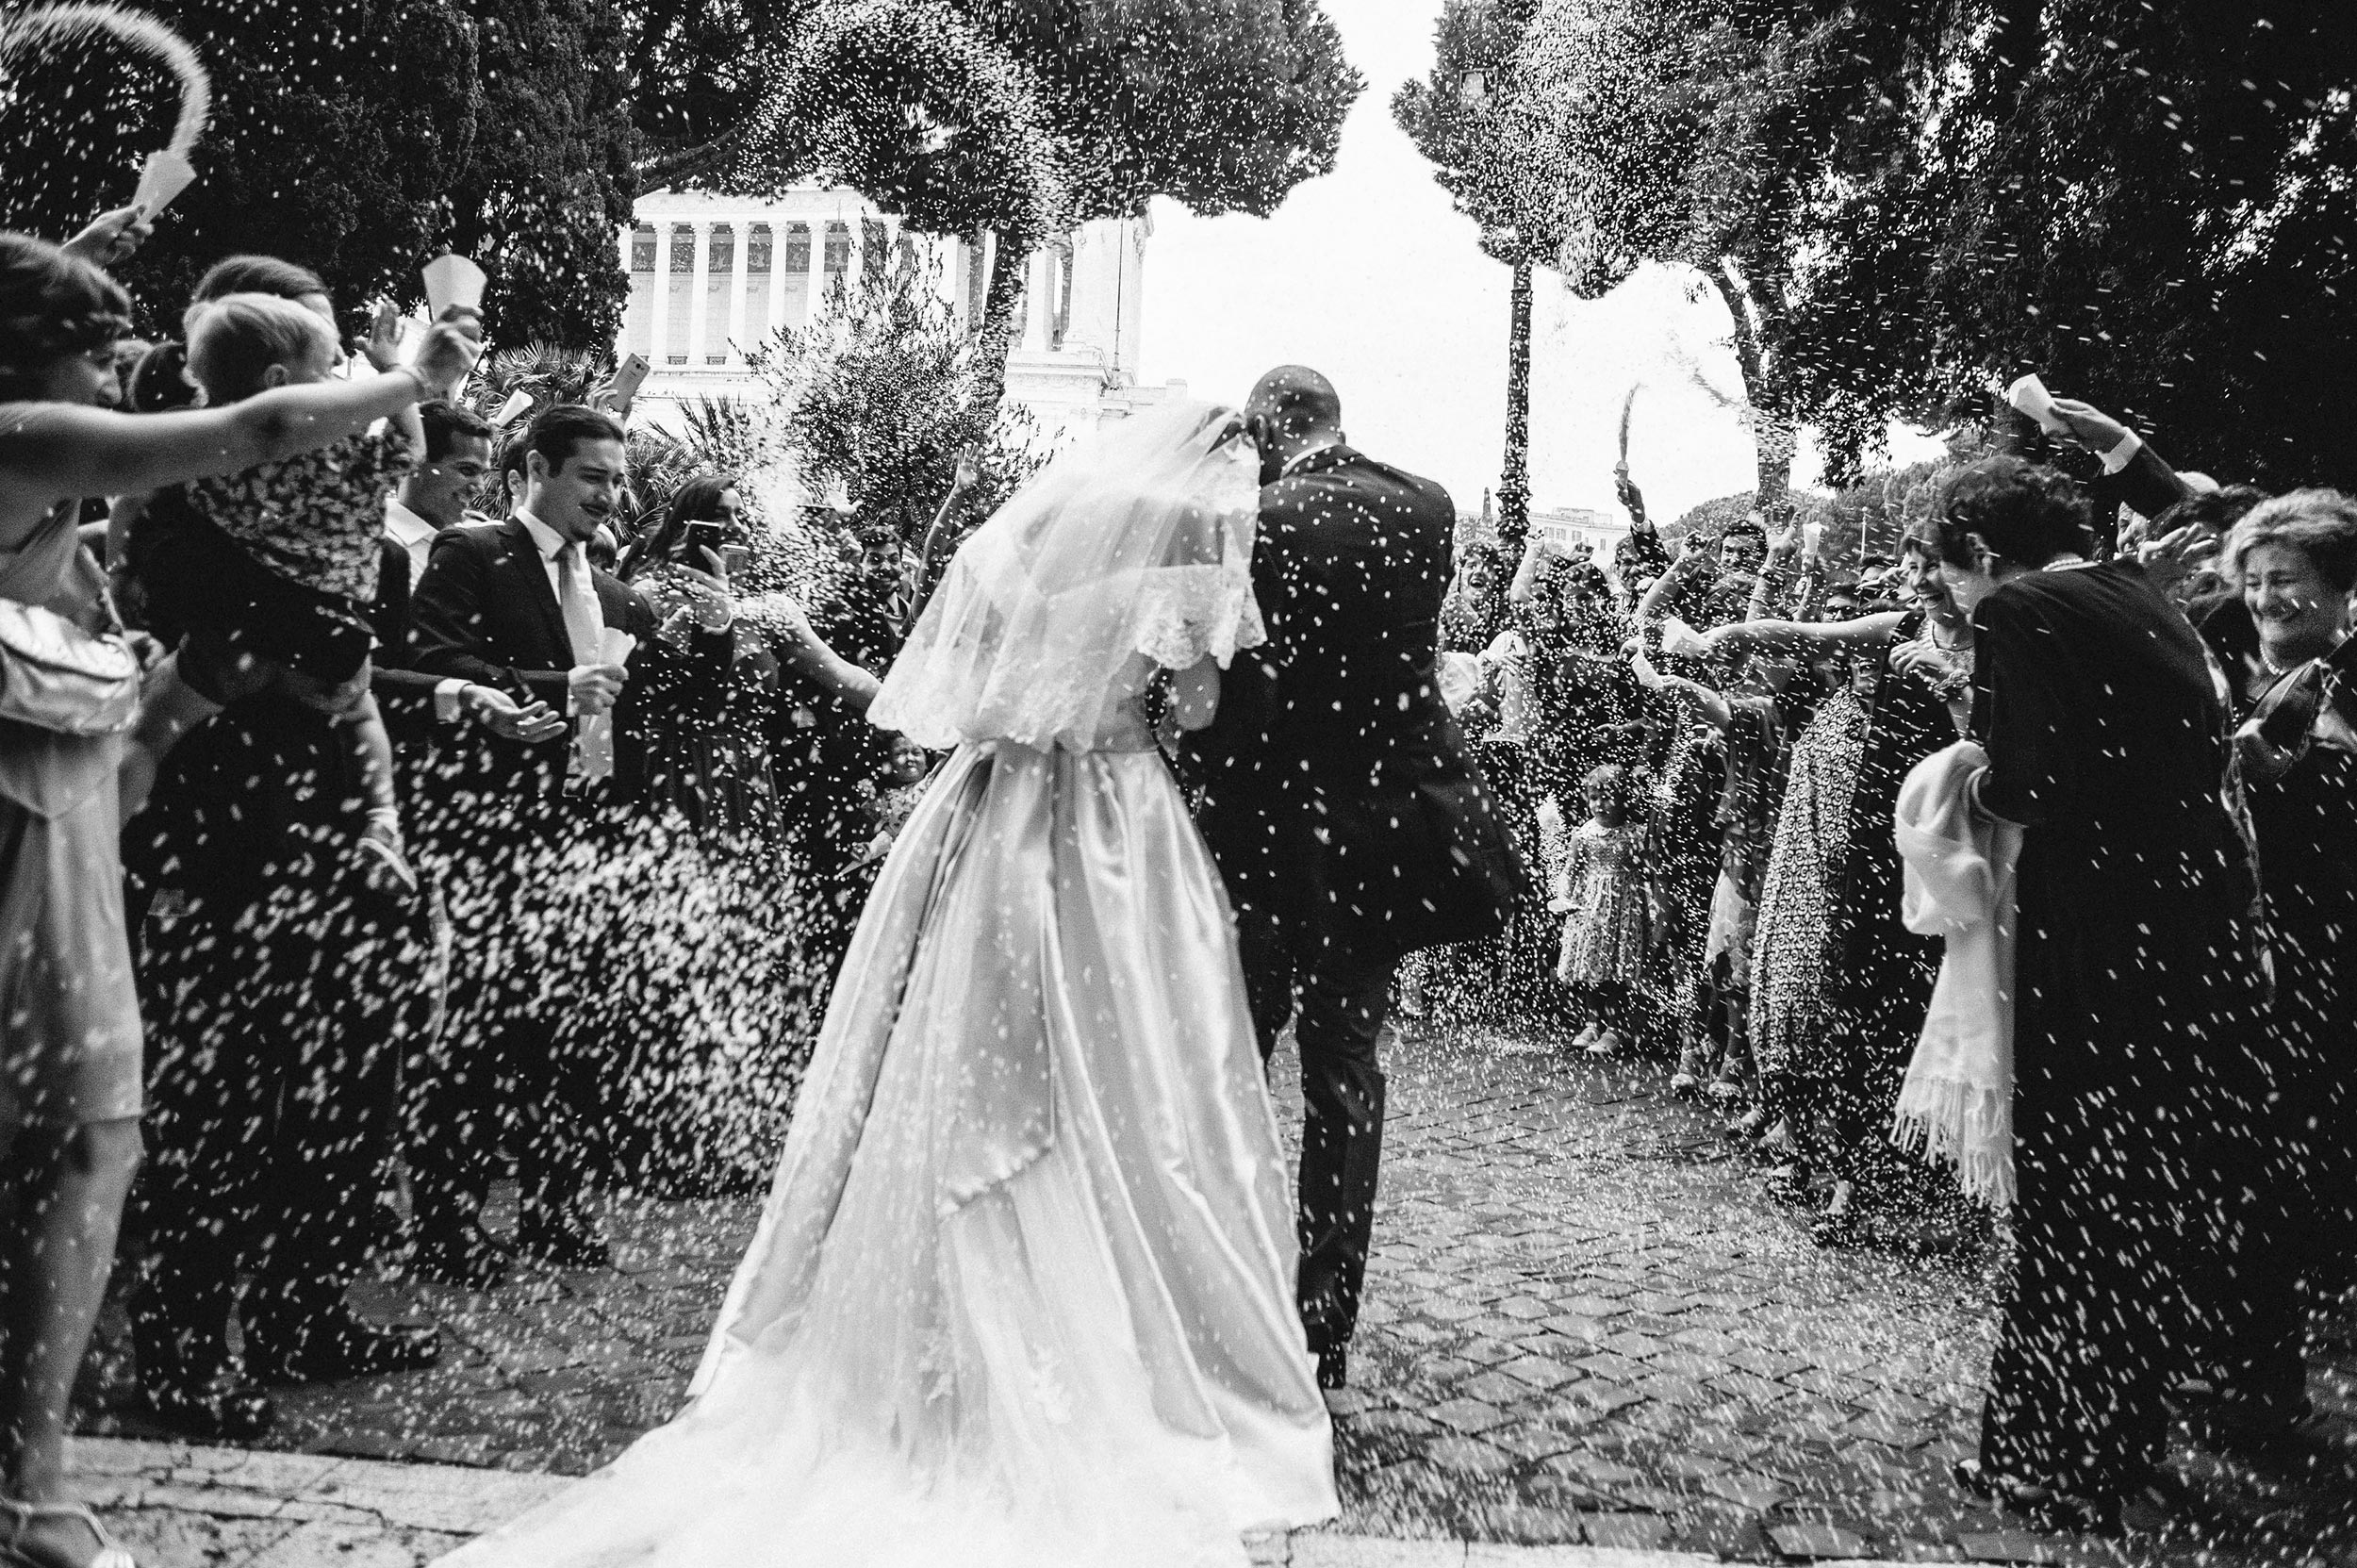 confetti-rice-outside-the-church-rome-san-marco-black-and-white-wedding-photography.jpg